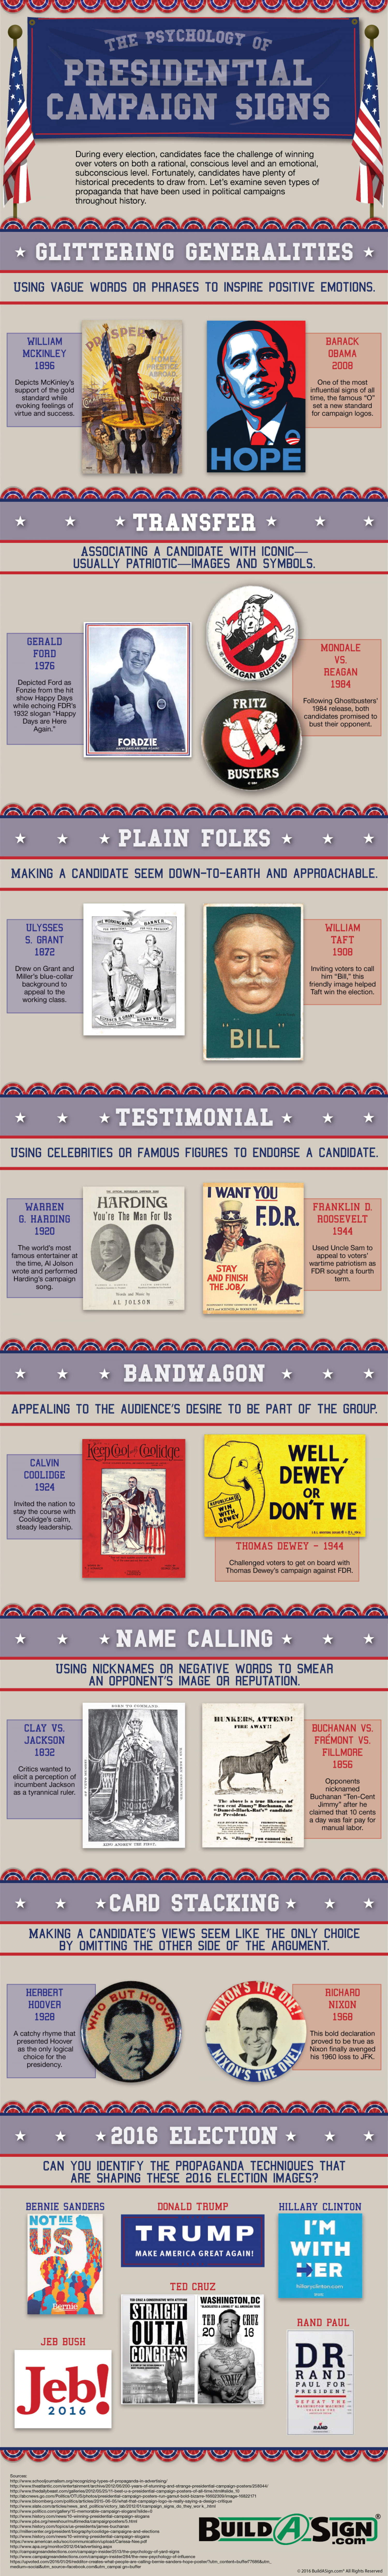 The Psychology of Presidential Campaign Signs Infographic